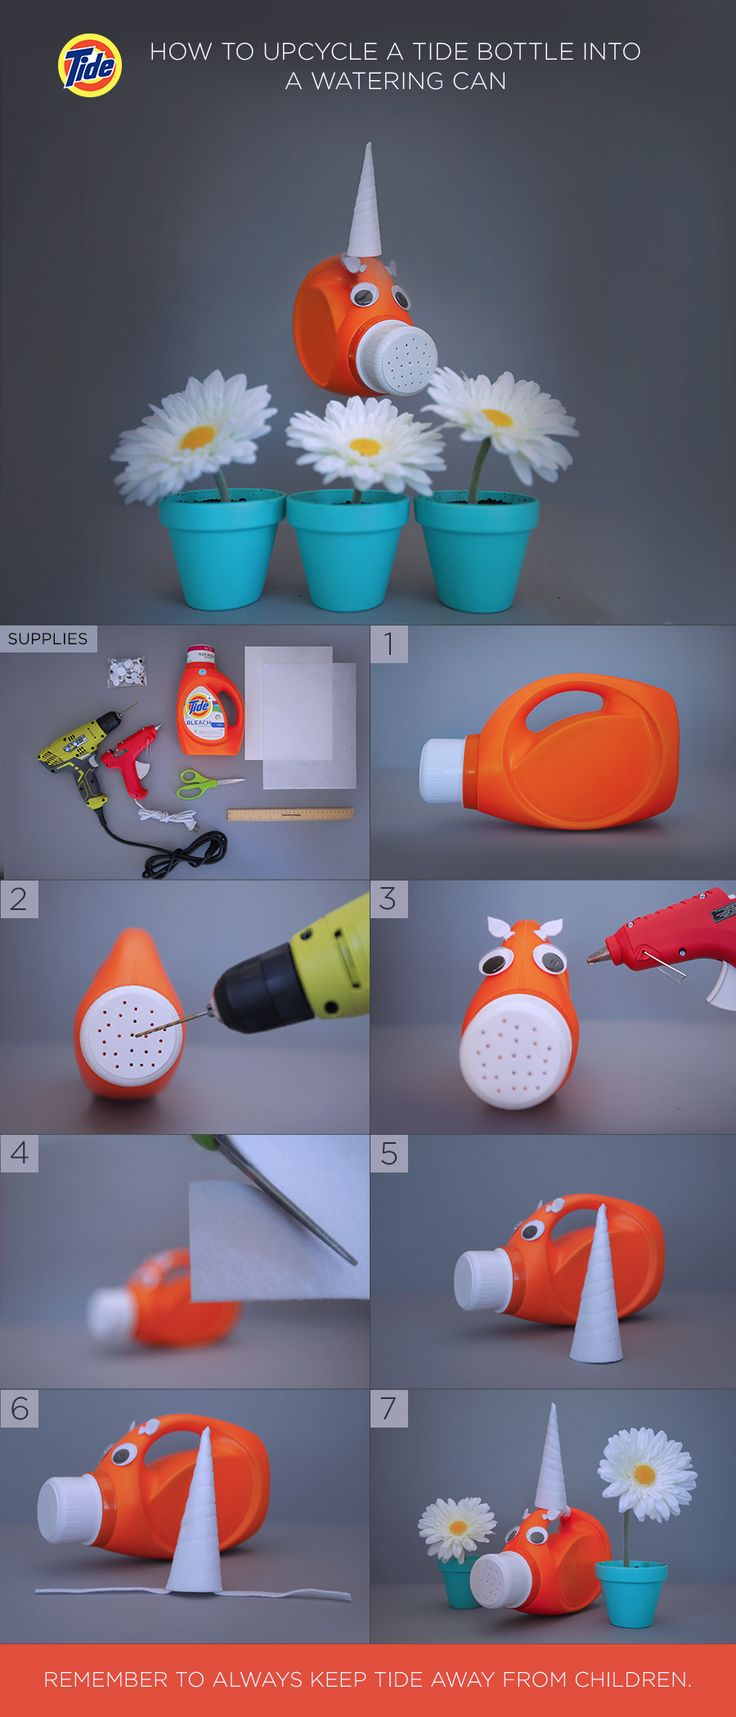 """How to Upcycle a Tide Bottle Into a DIY Watering Can: (1) Rinse bottle thoroughly to clear out excess detergent. Then remove label with hot water, soap and a sponge. (2) Drill holes in lid. (3) Hot glue eyes and ears to bottle. (4) Cut 5"""" quarter-circles from felt and paper. (5) Place the felt on top of the paper, hot-glue them together, and make a cone. (6) Attach two 6"""" flaps to the cone and tie it to the bottle handle. (7) Let Piggycorn help you take care of your flowers, and recycle."""